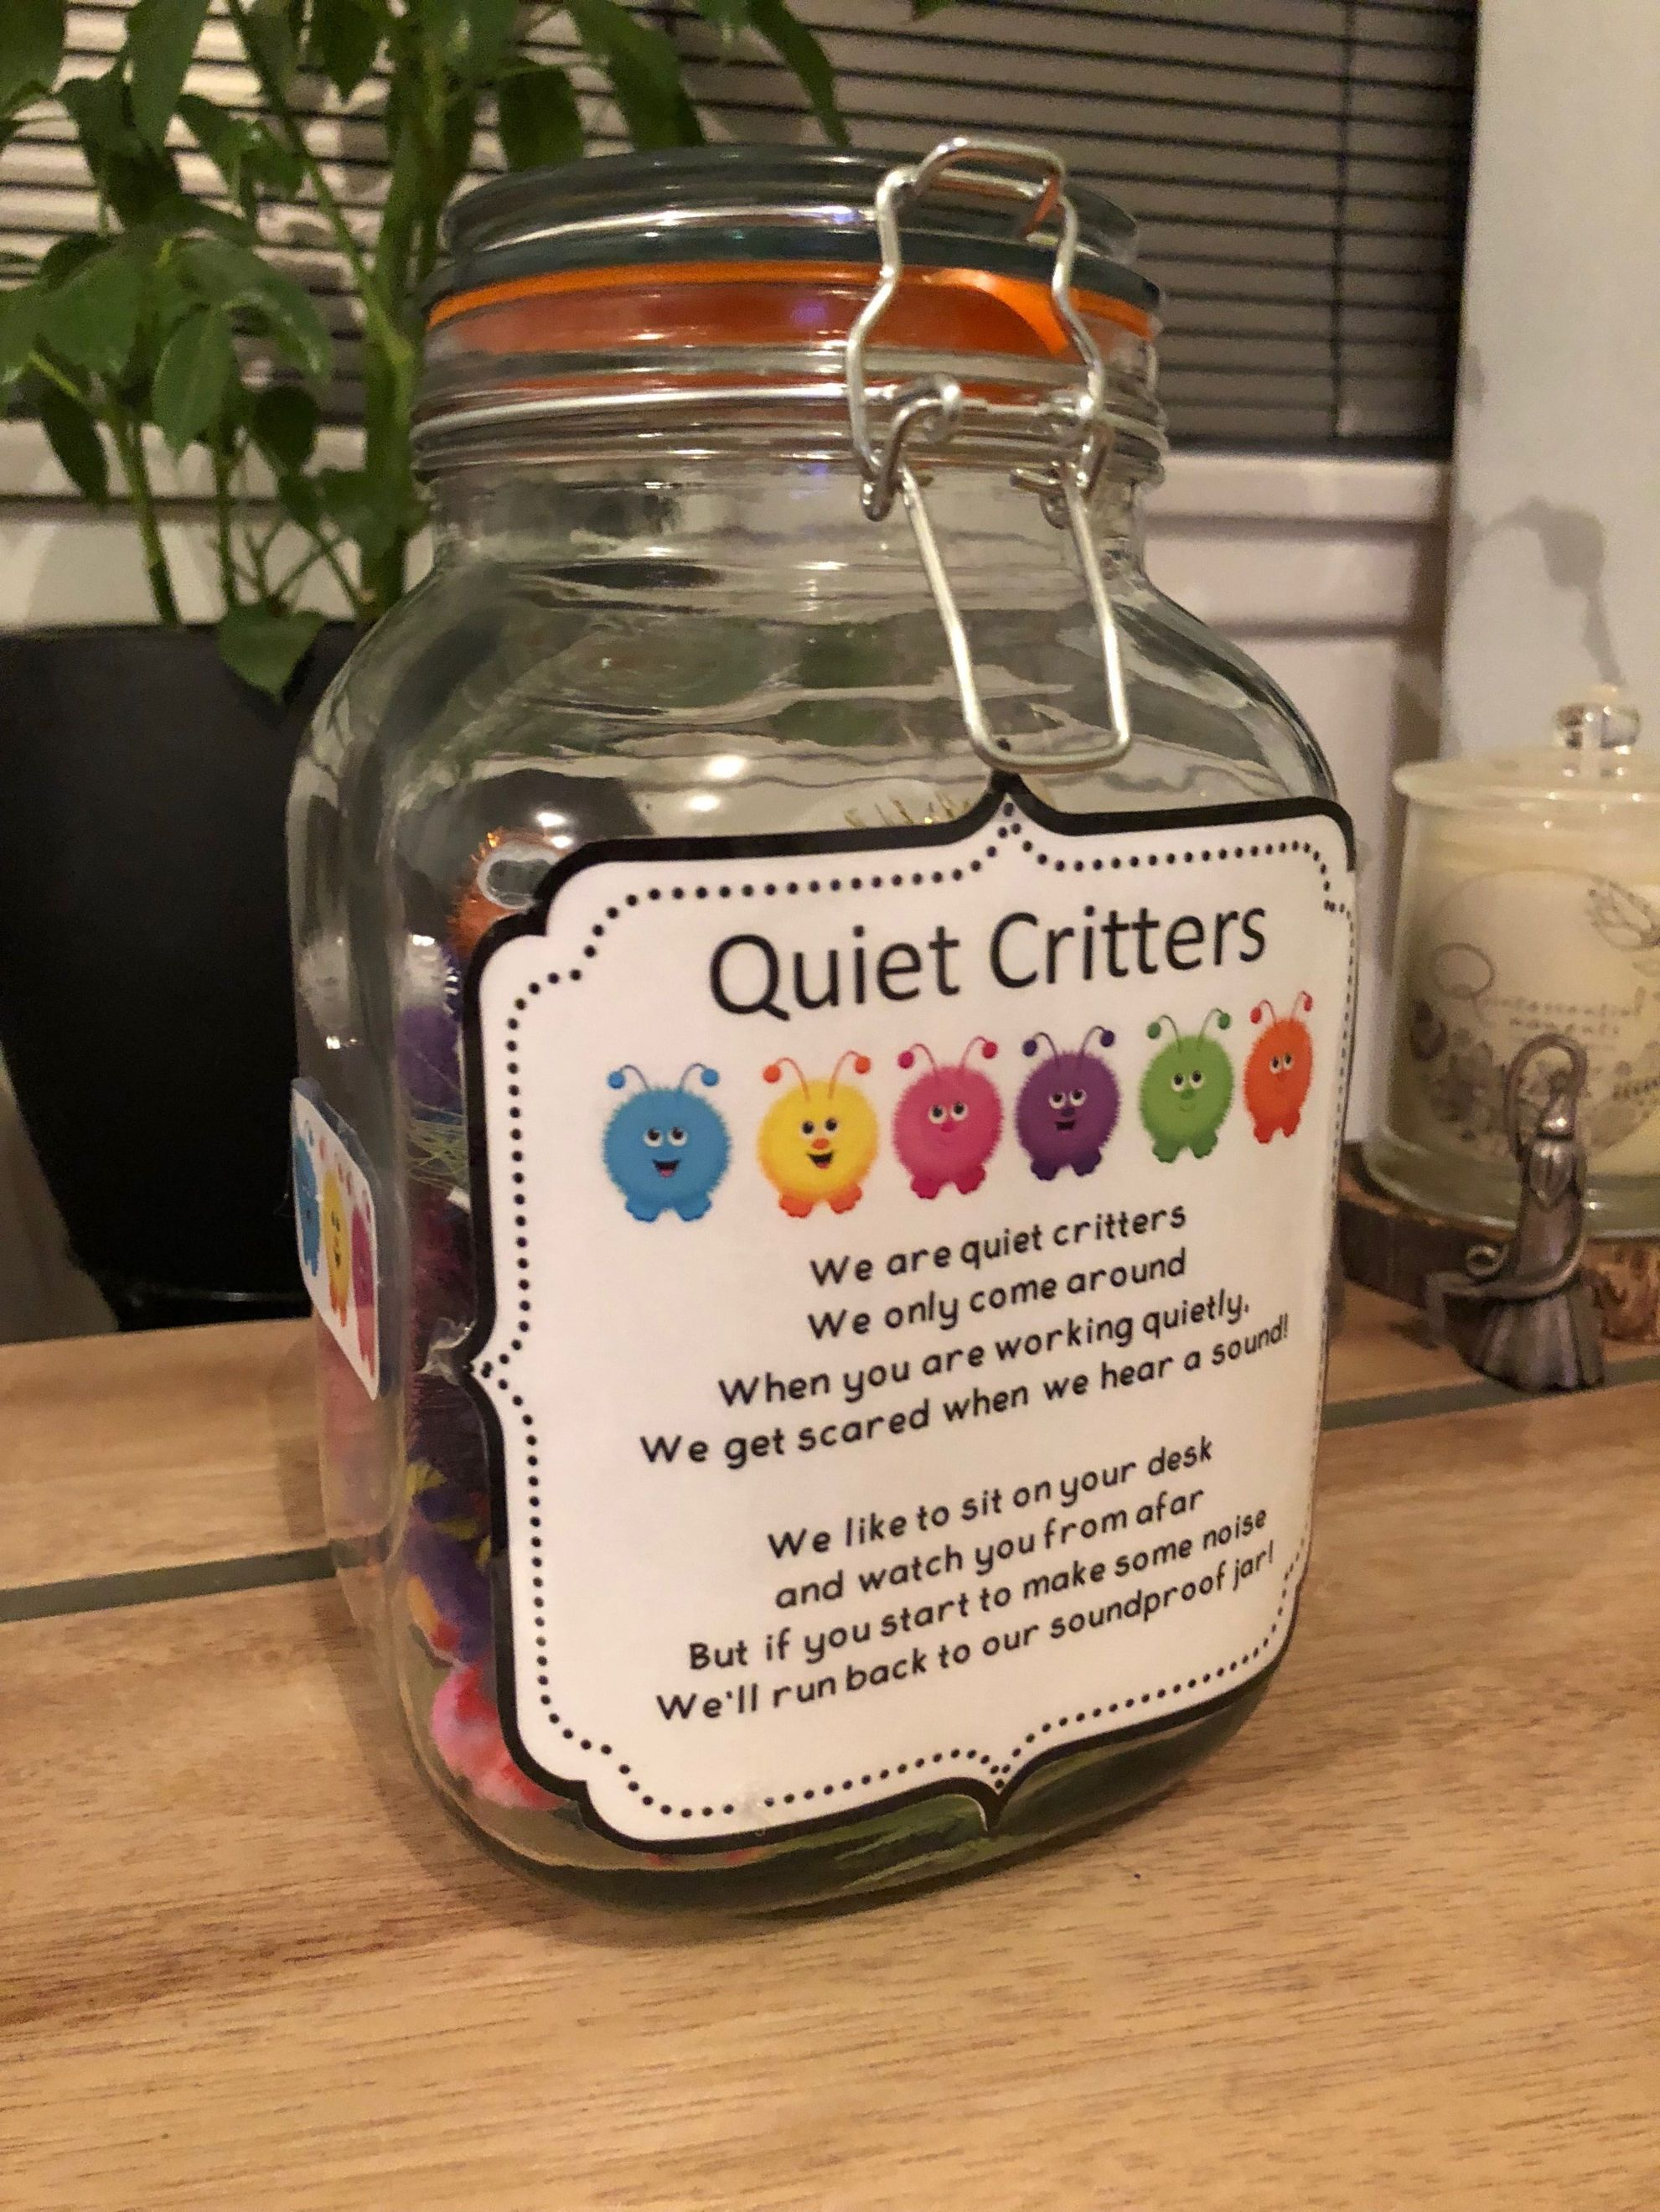 Quiet critters - guest blog post from a preservice teacher about how she used these little critters to maximize student engagement during silent reading. #quietcritters Quiet critters - guest blog post from a preservice teacher about how she used these little critters to maximize student engagement during silent reading. #quietcritters Quiet critters - guest blog post from a preservice teacher about how she used these little critters to maximize student engagement during silent reading. #quietcr #quietcritters